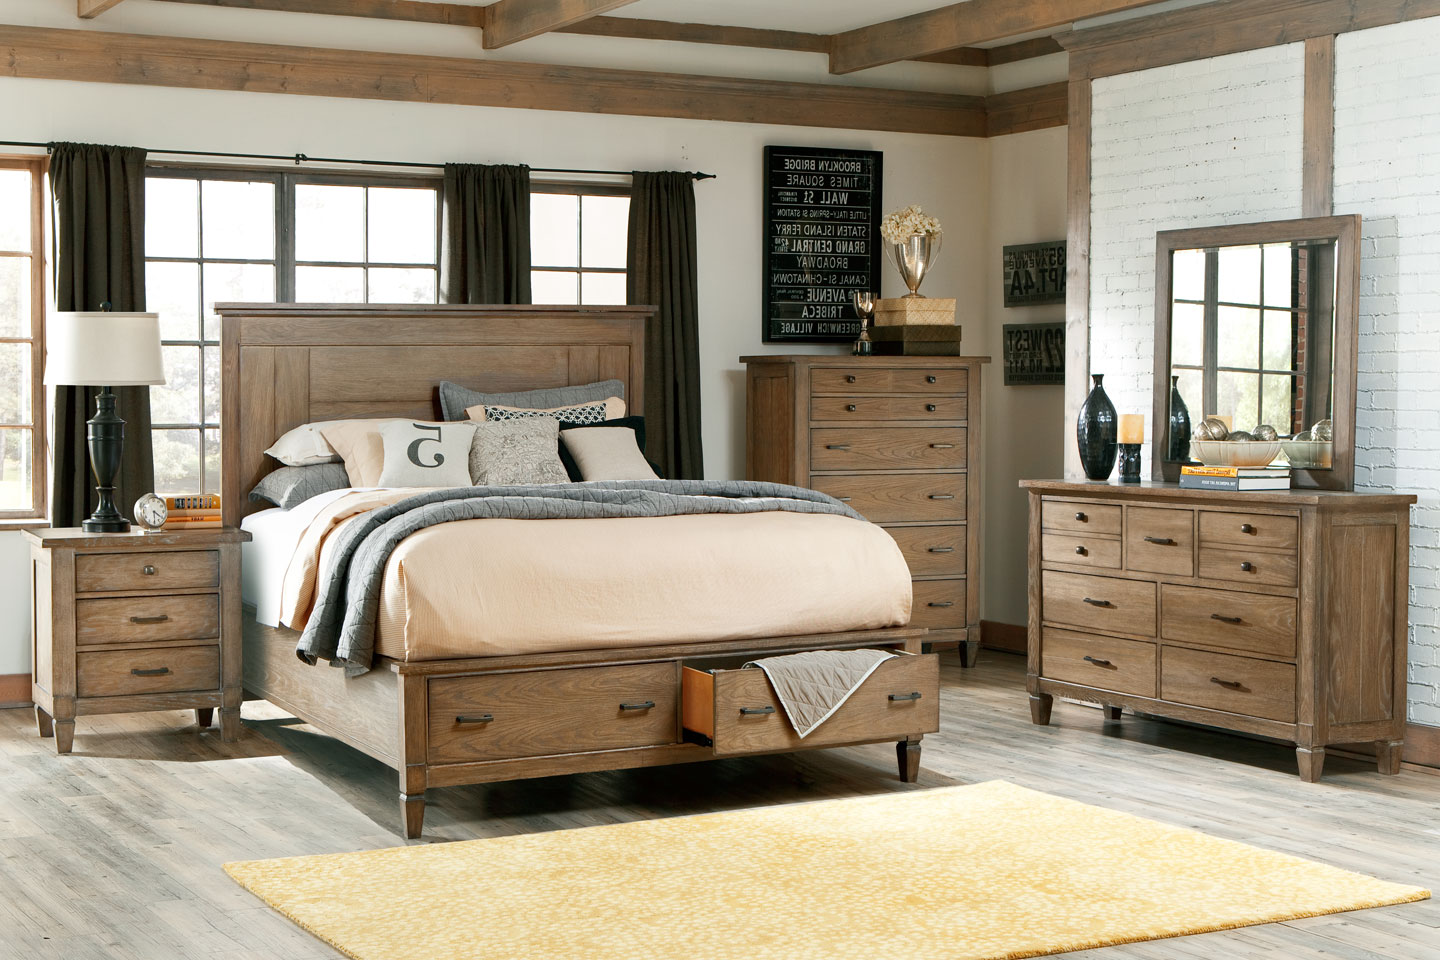 Gavin wood bedroom furniture collection wood bedroom Bedrooms furniture